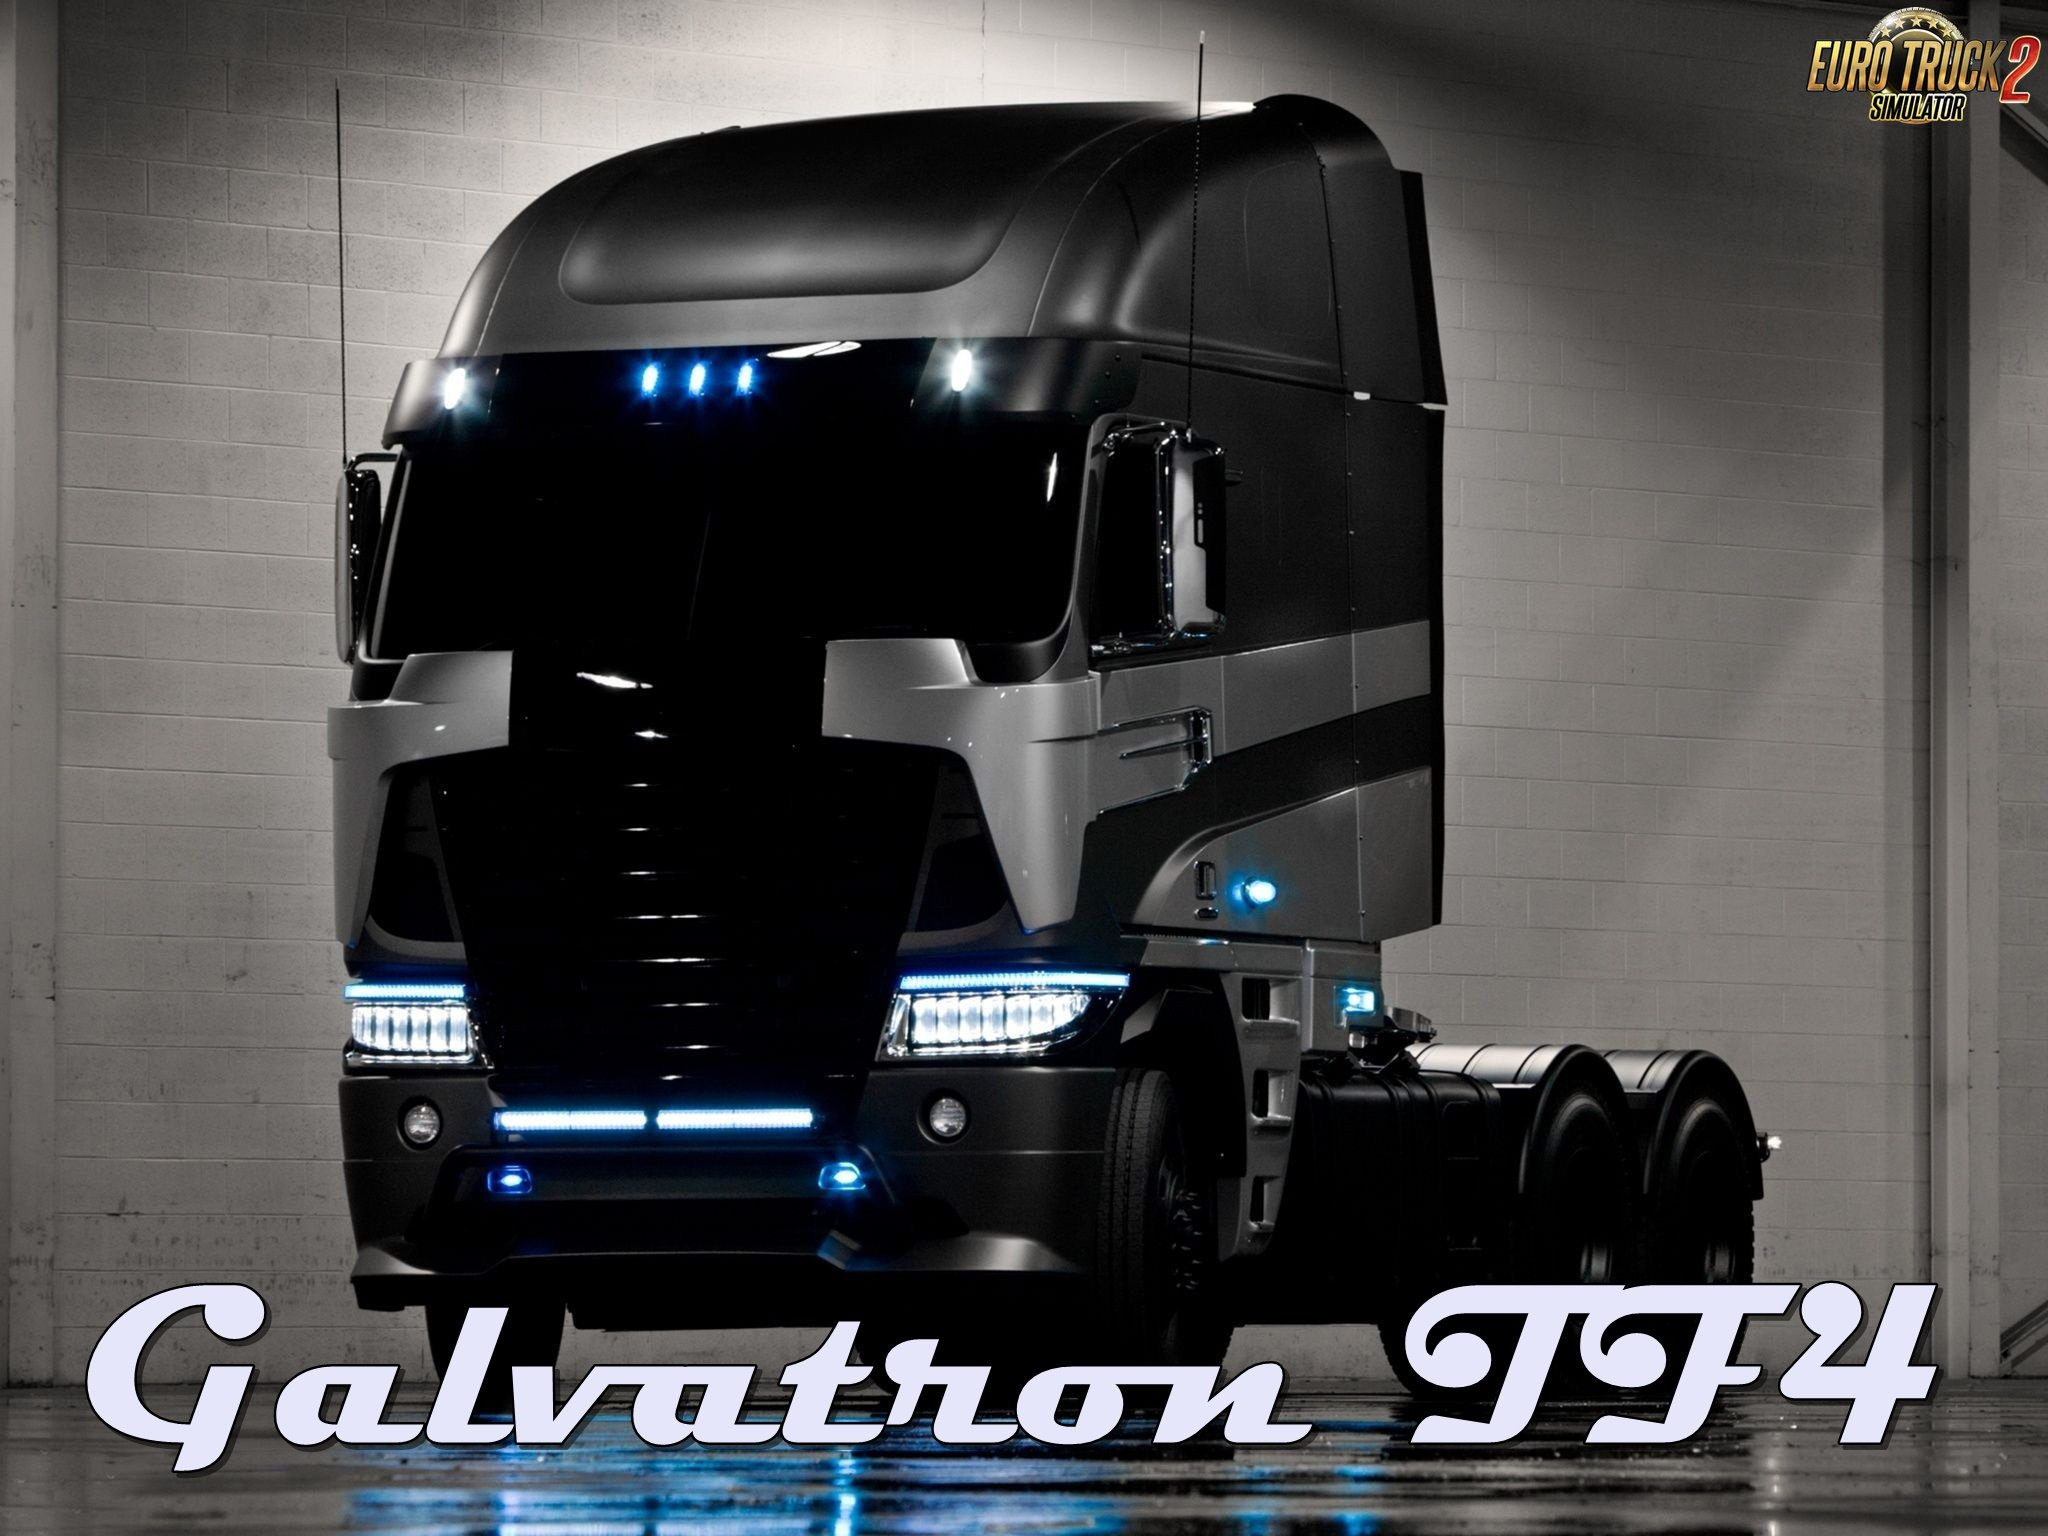 Truck Galvatron TF4 v1.0 for Ets2